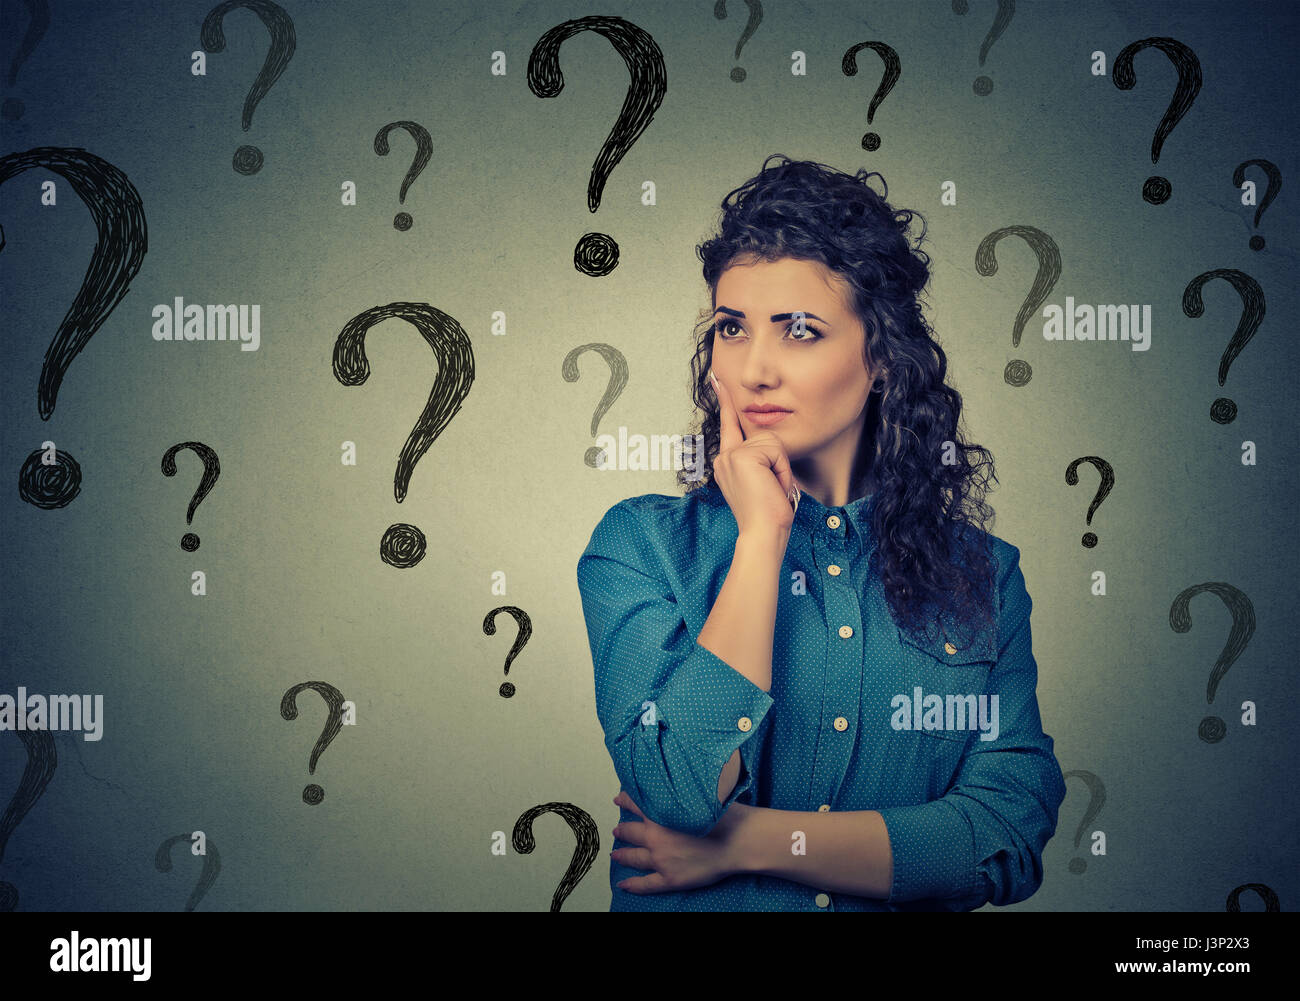 Portrait confused woman bewildered needs a solution has many questions isolated on gray background. Human face expression Stock Photo